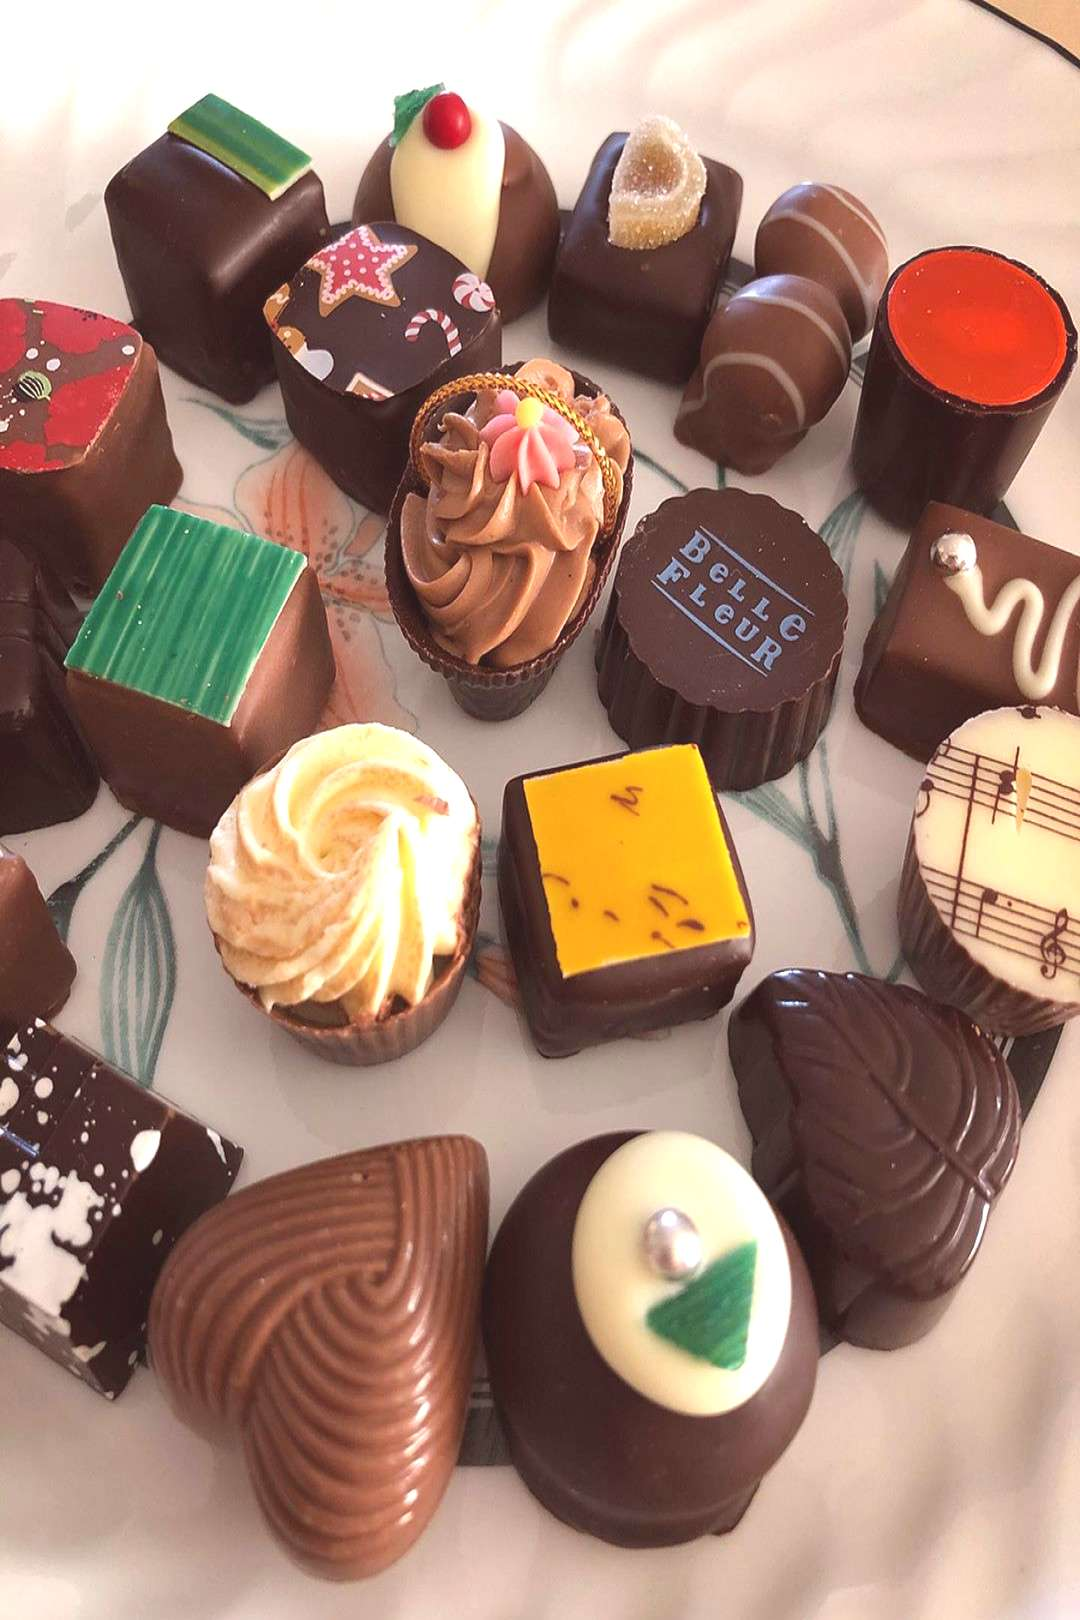 The chocolates taste delicious and beautifully decorated as well